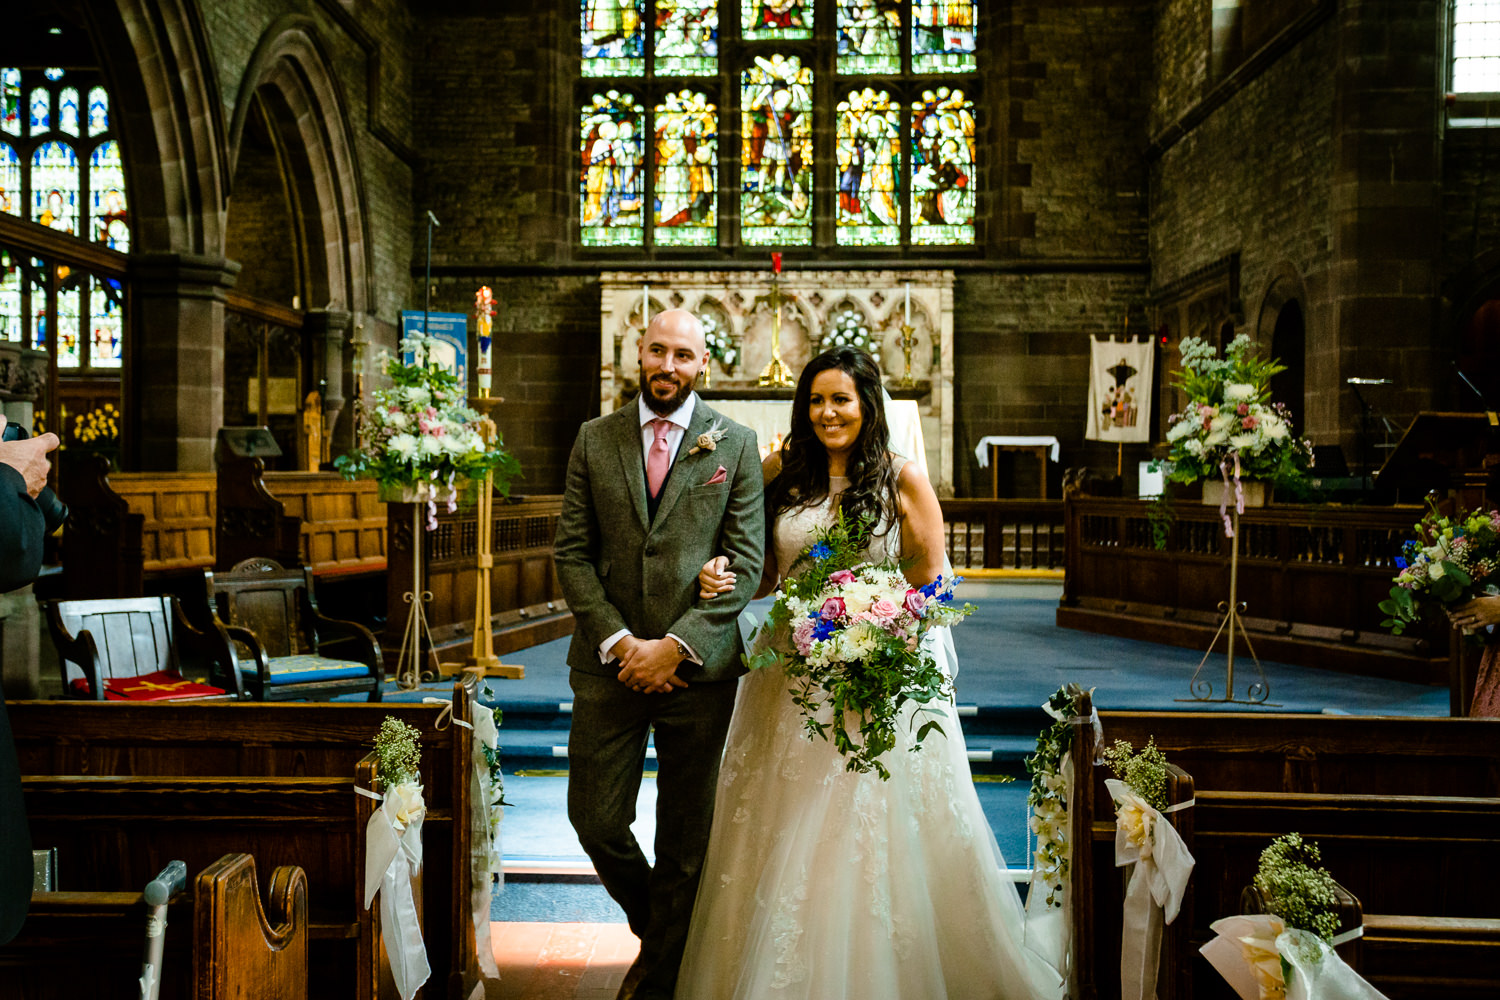 Rochdale-Wedding-Photographer-046.jpg